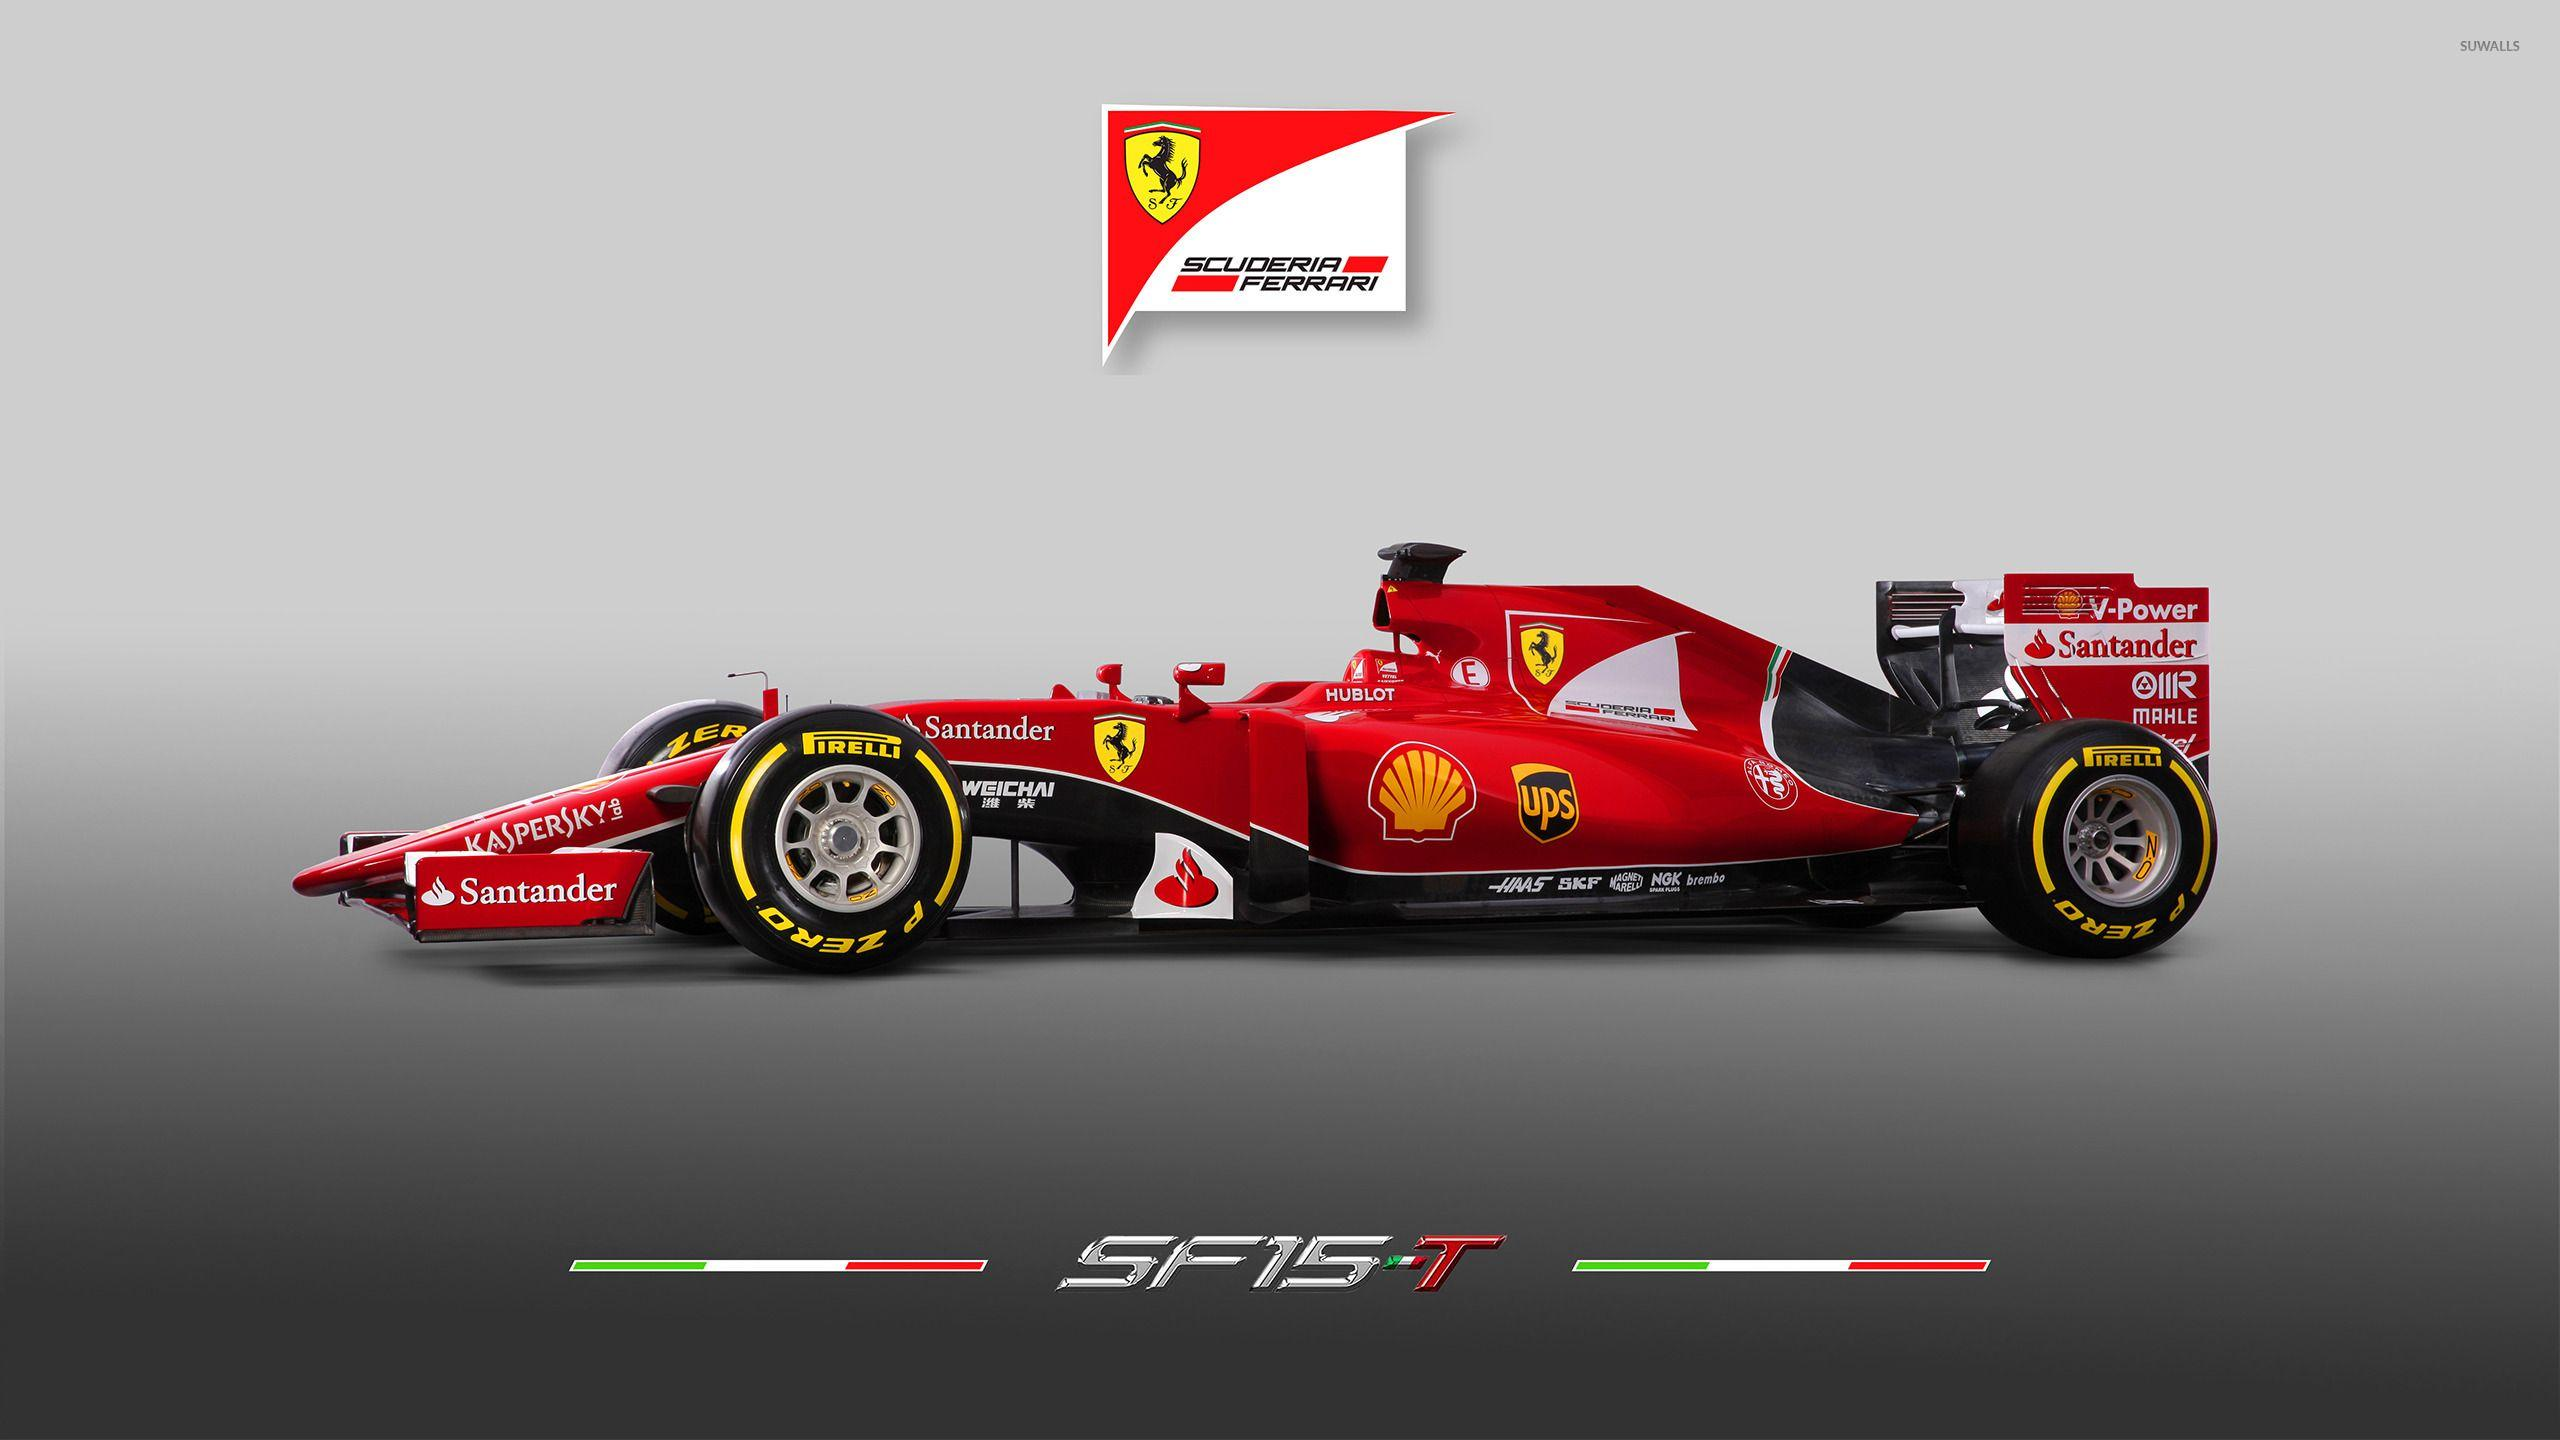 Scuderia Ferrari Wallpaper